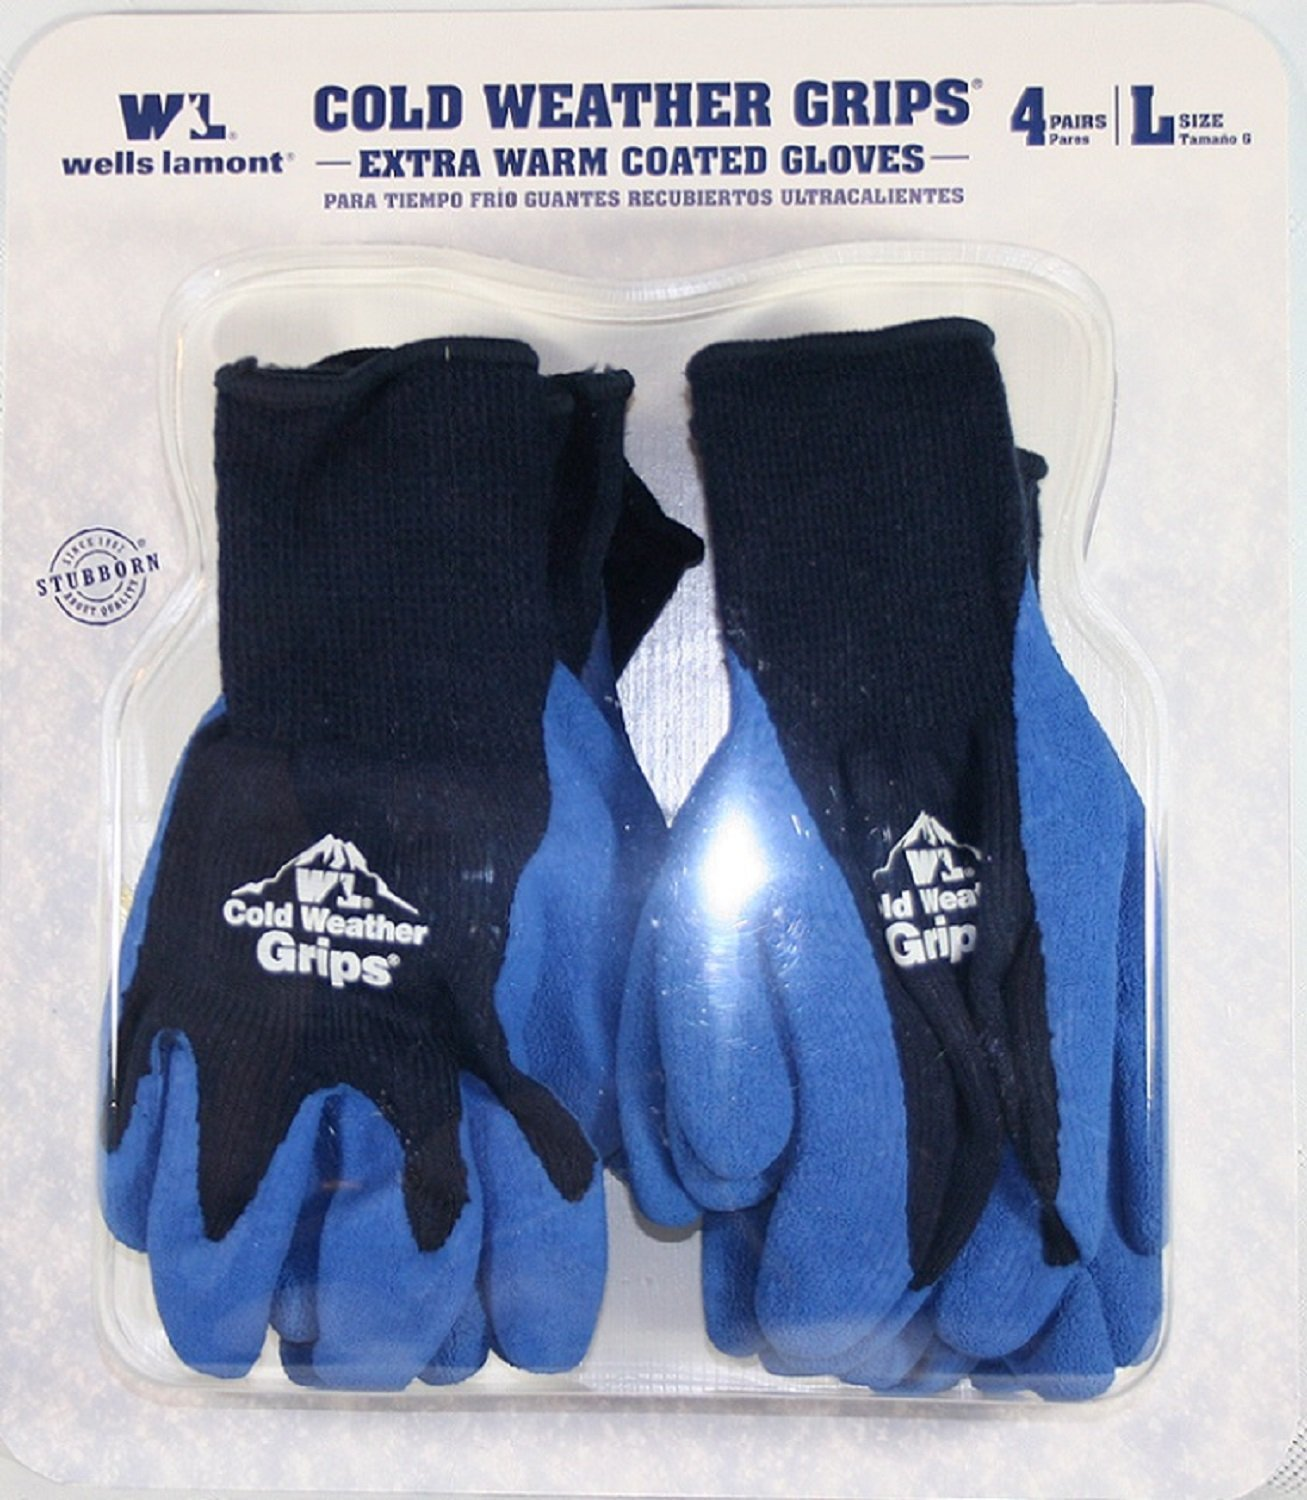 Amazon.com : Wells Lamont Cold Weather Grips - Extra Warm ...